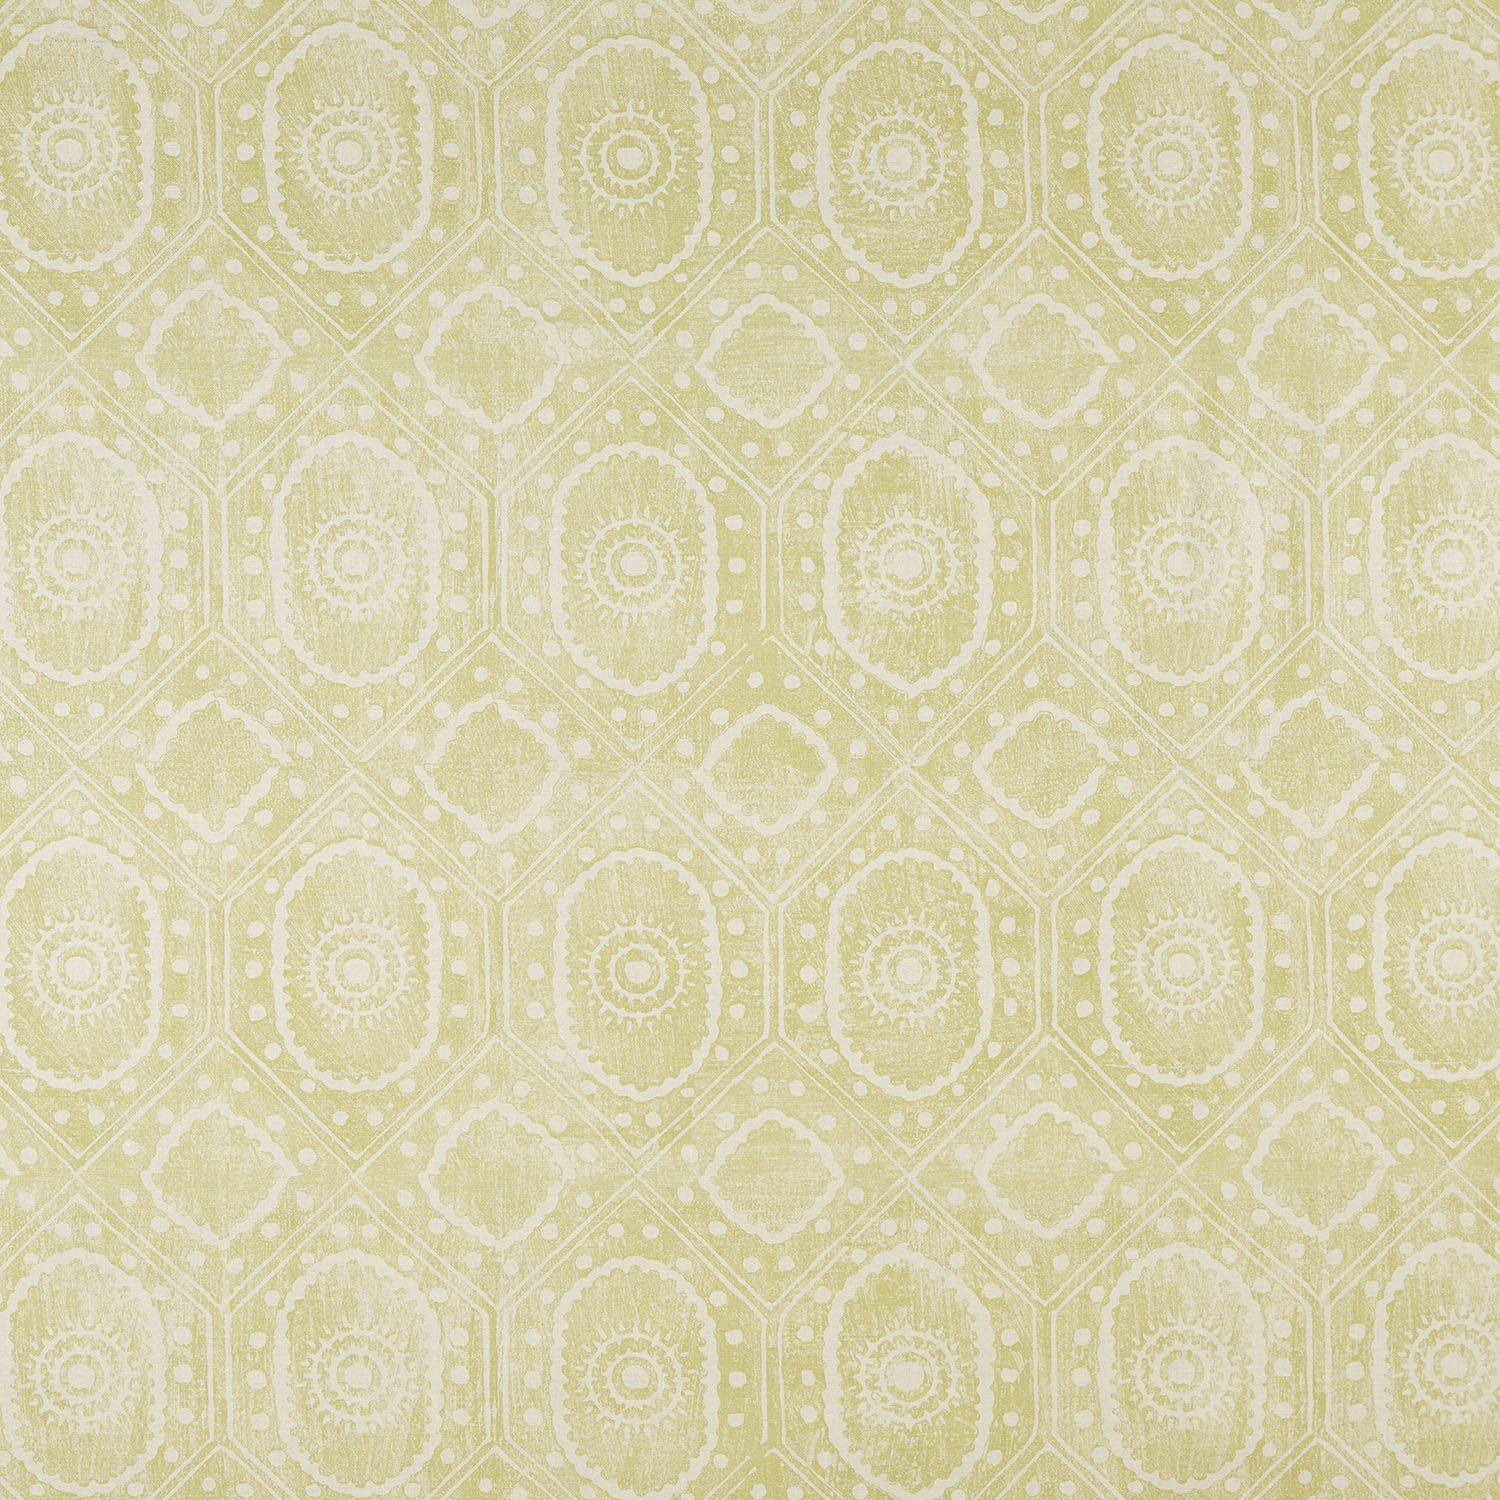 <p><strong>DIAMOND</strong>lime/natural 2400-04<a href=/the-somerton-collection/diamond-lime-natural-2400-04>More →</a></p>